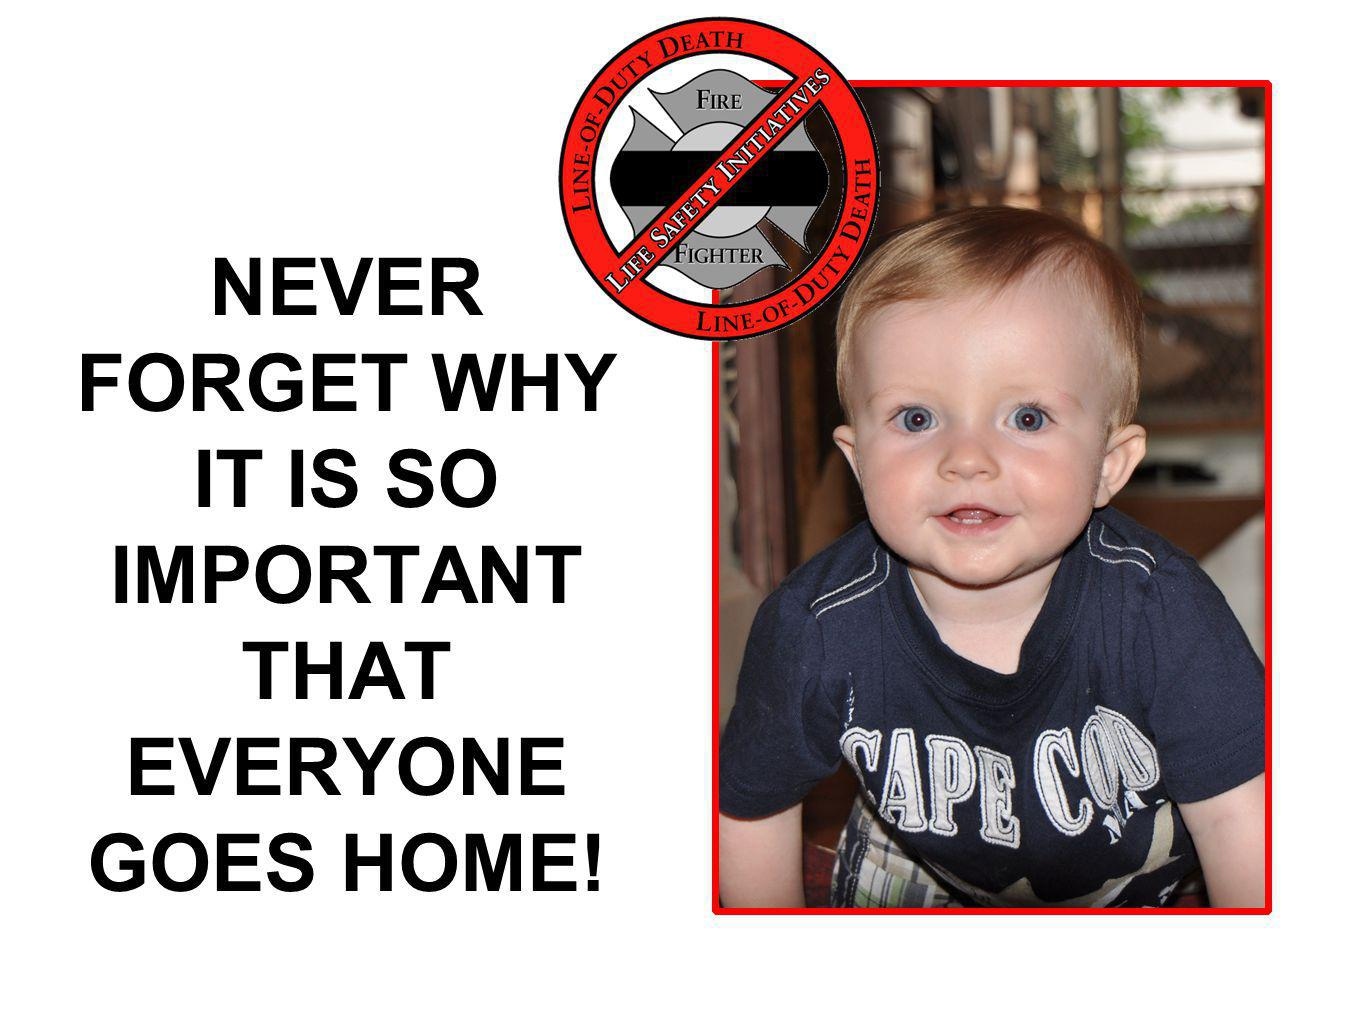 NEVER FORGET WHY IT IS SO IMPORTANT THAT EVERYONE GOES HOME!